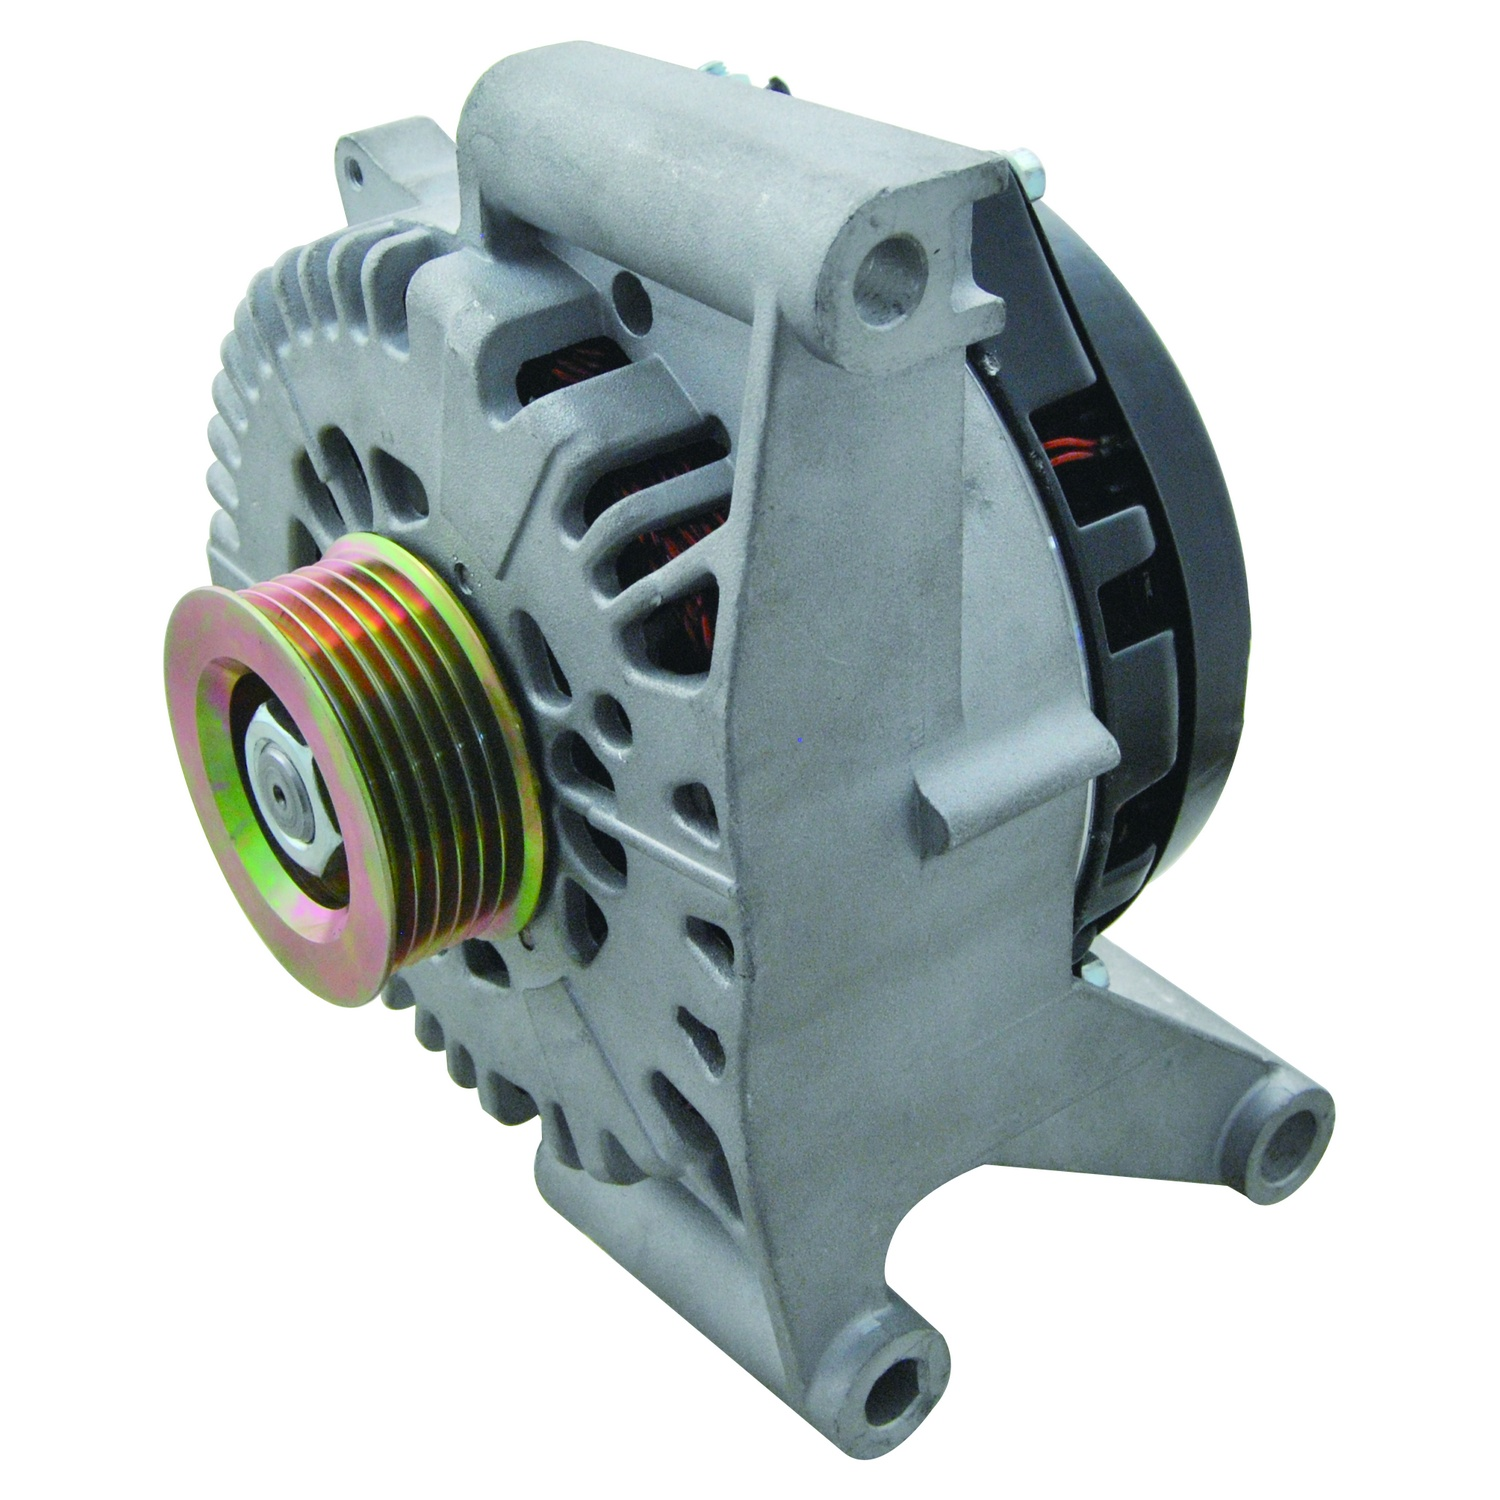 NEW Alternator Fits 05 06 07 Ford Five Hundred Freestyle Mercury Montego 30L 5F9Z10346Aa 2